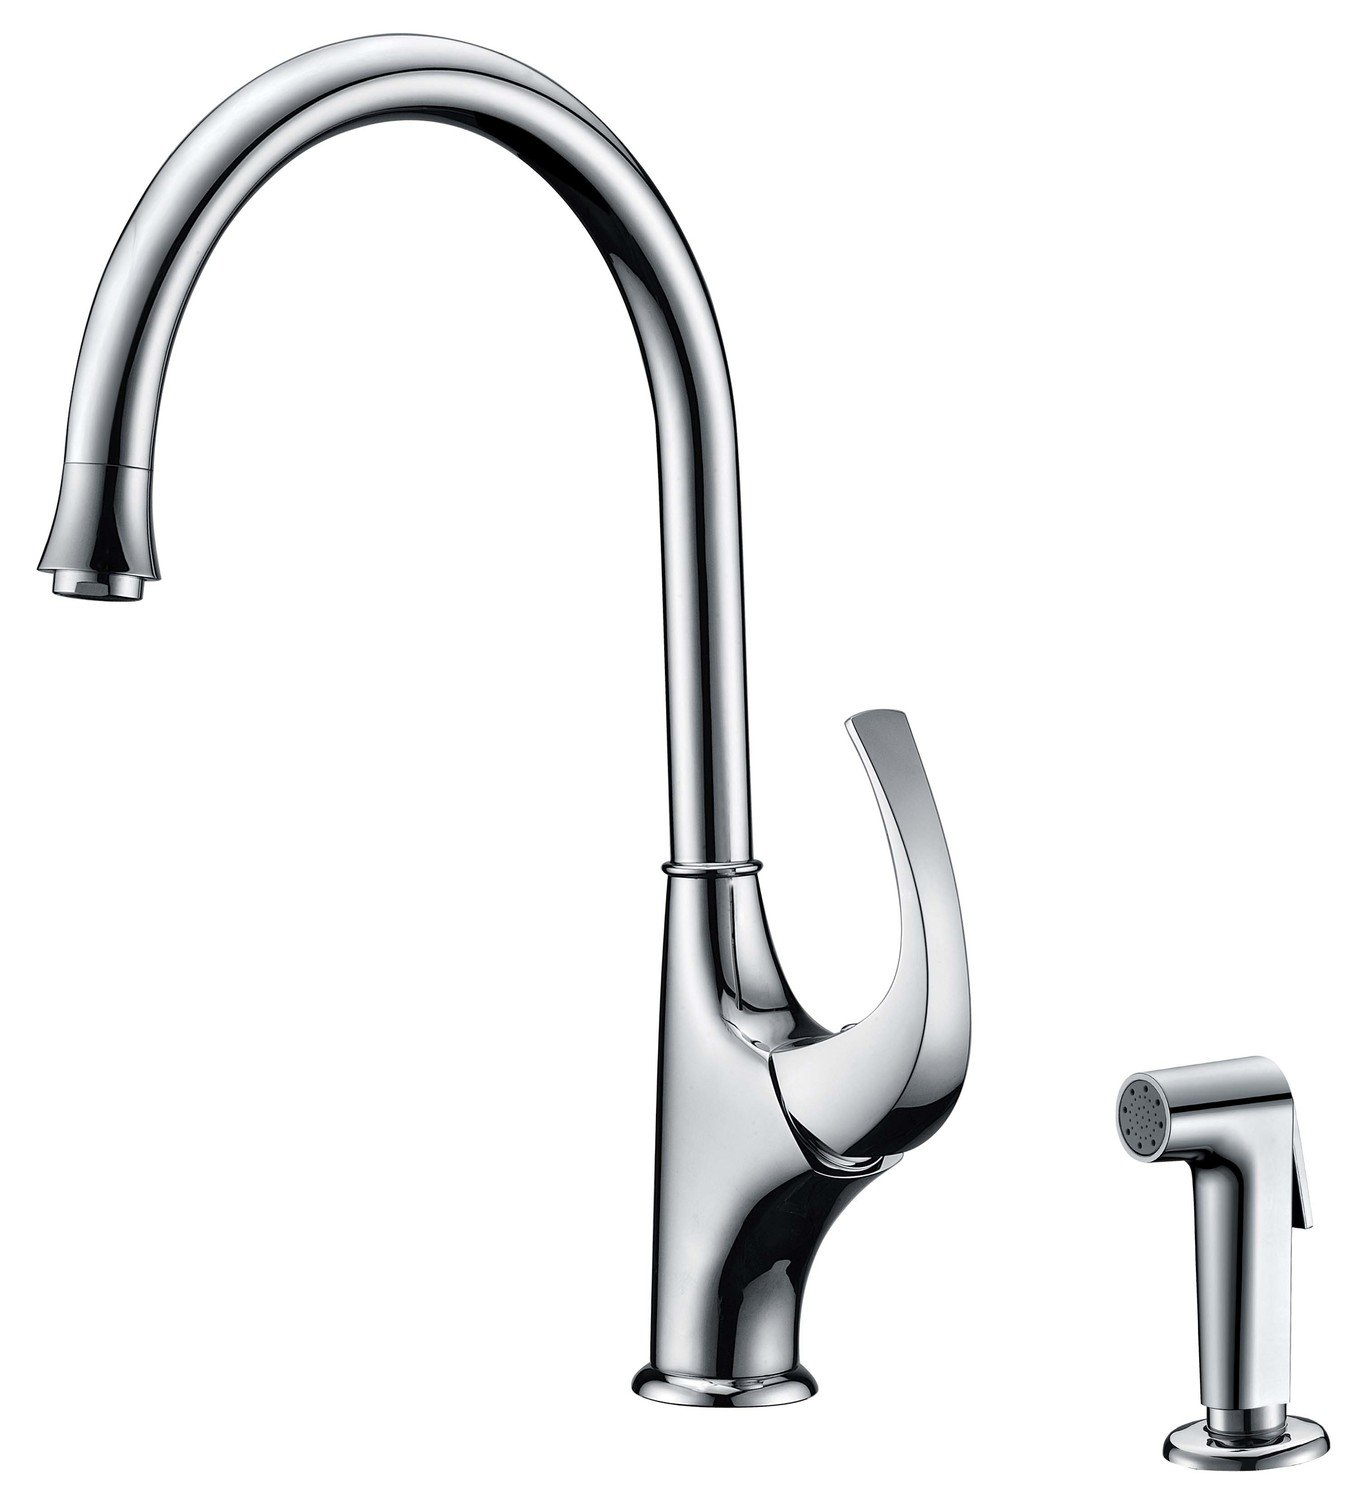 Single-handle kitchen faucet with side-spray